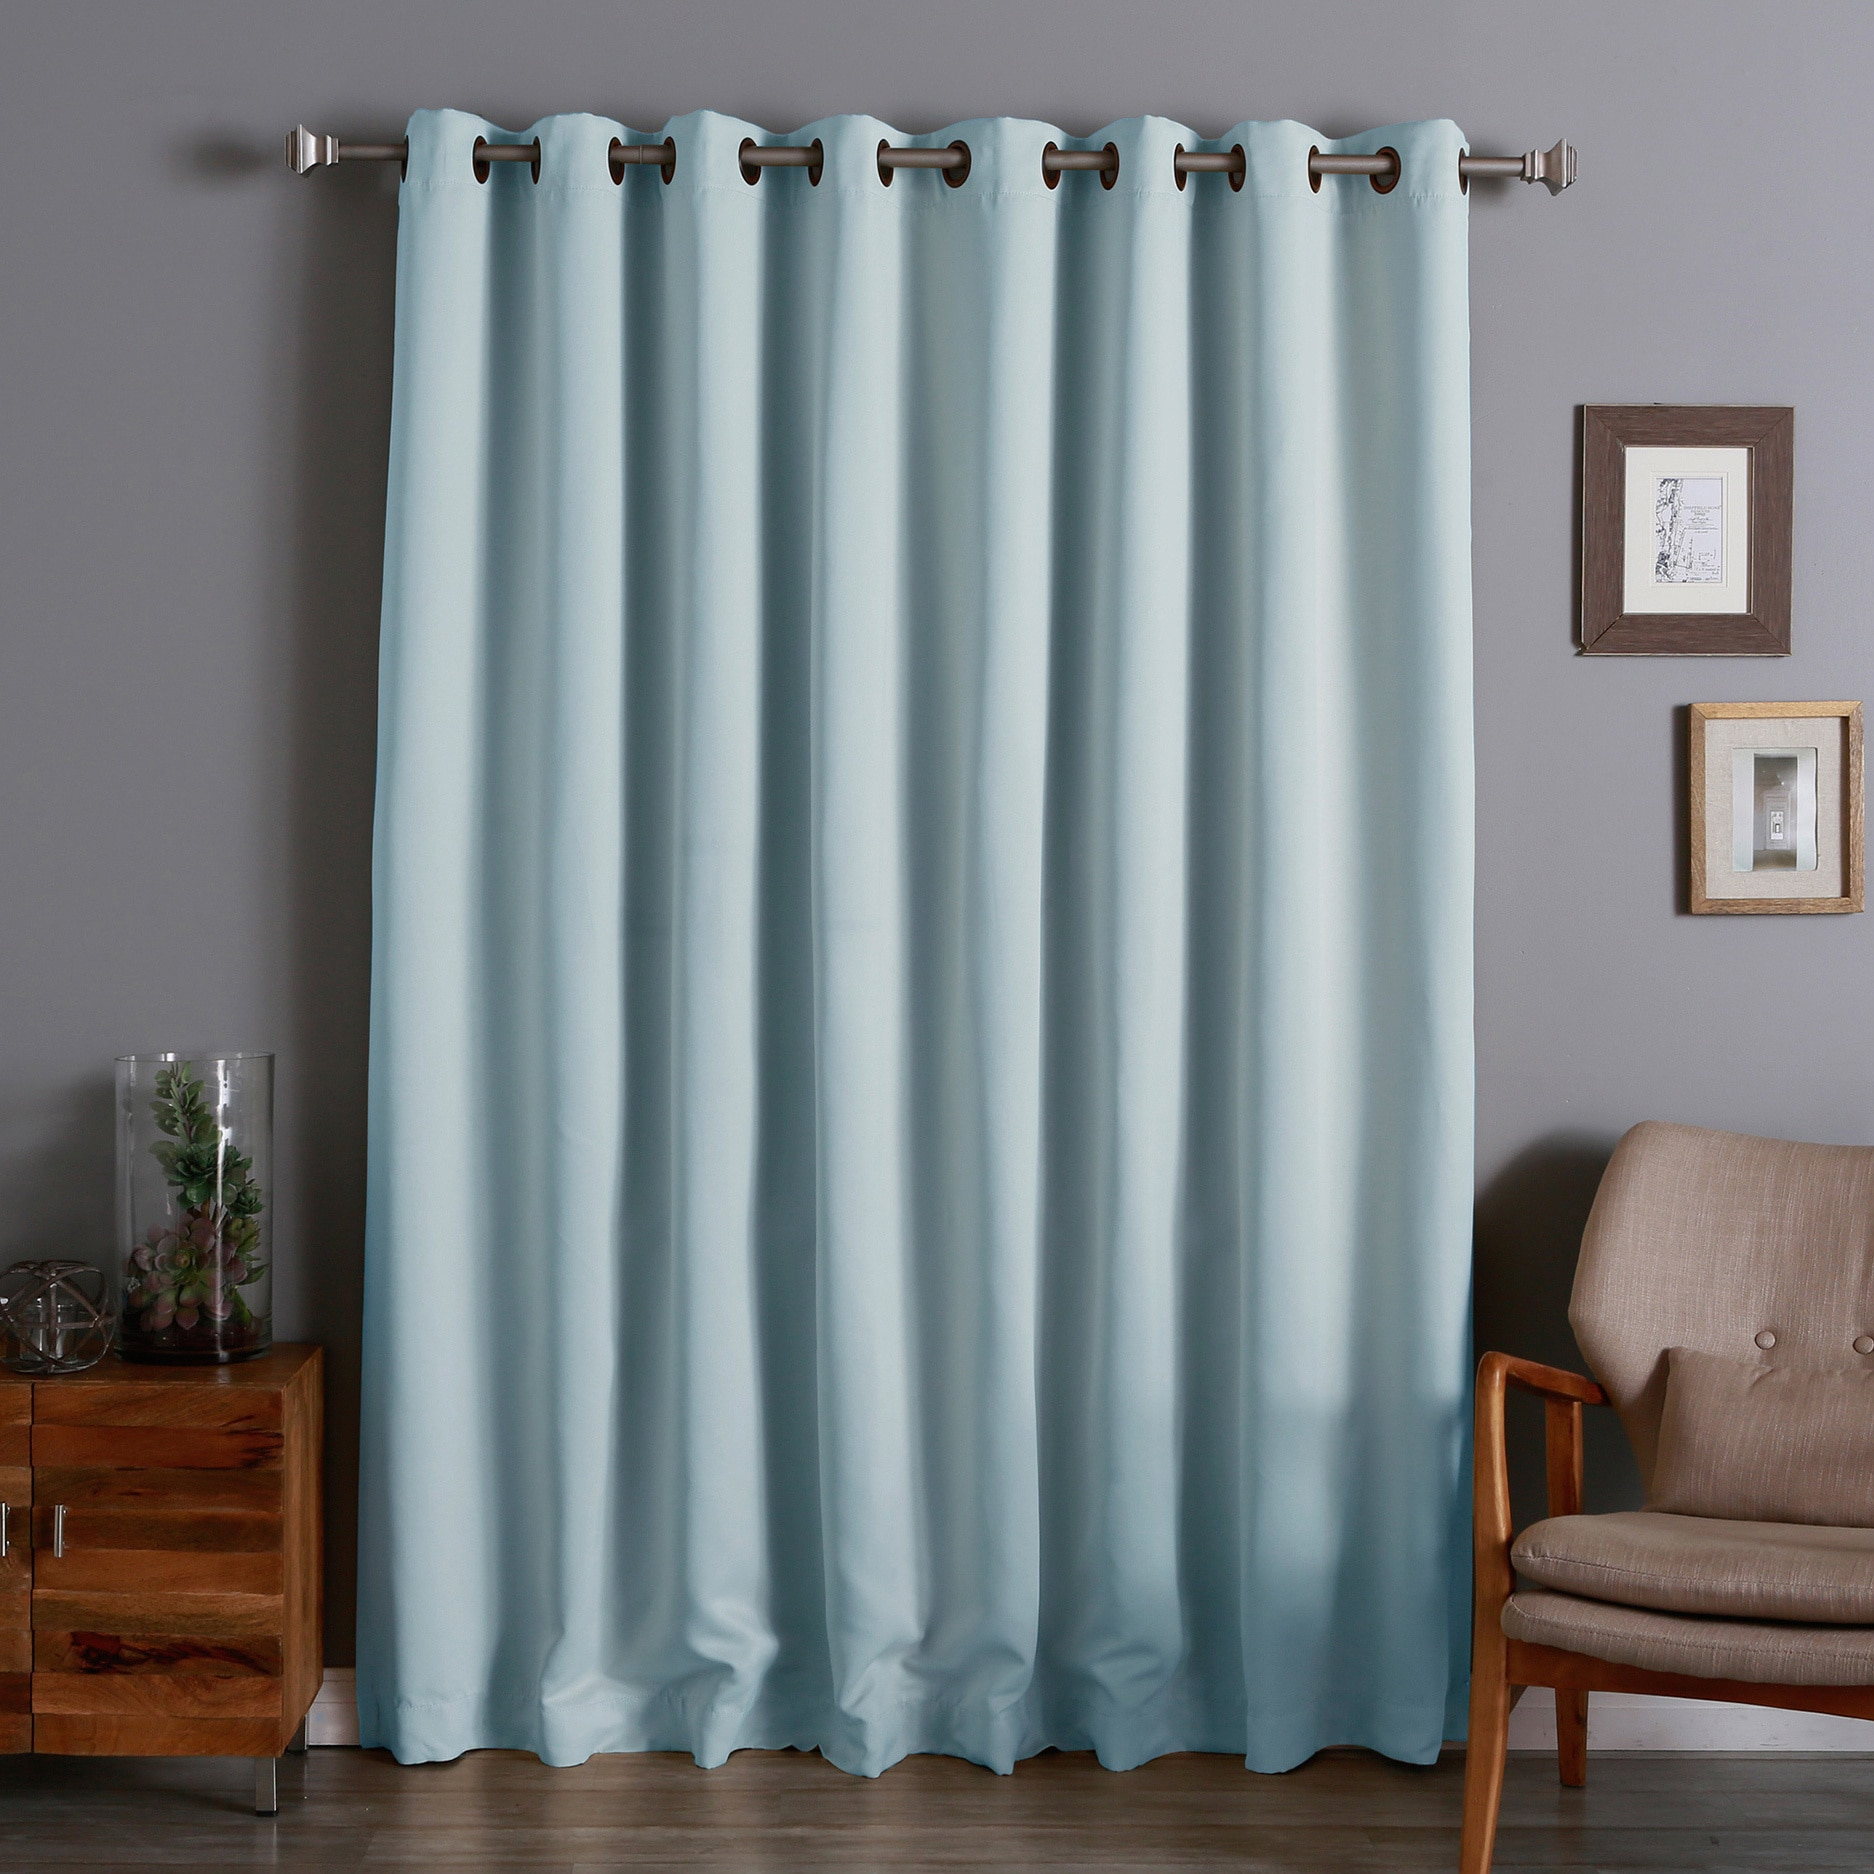 Teal Blackout Curtains Aurora Home Extra Wide Thermal 100 X 84 Inch Blackout Curtain Panel 100 X 84